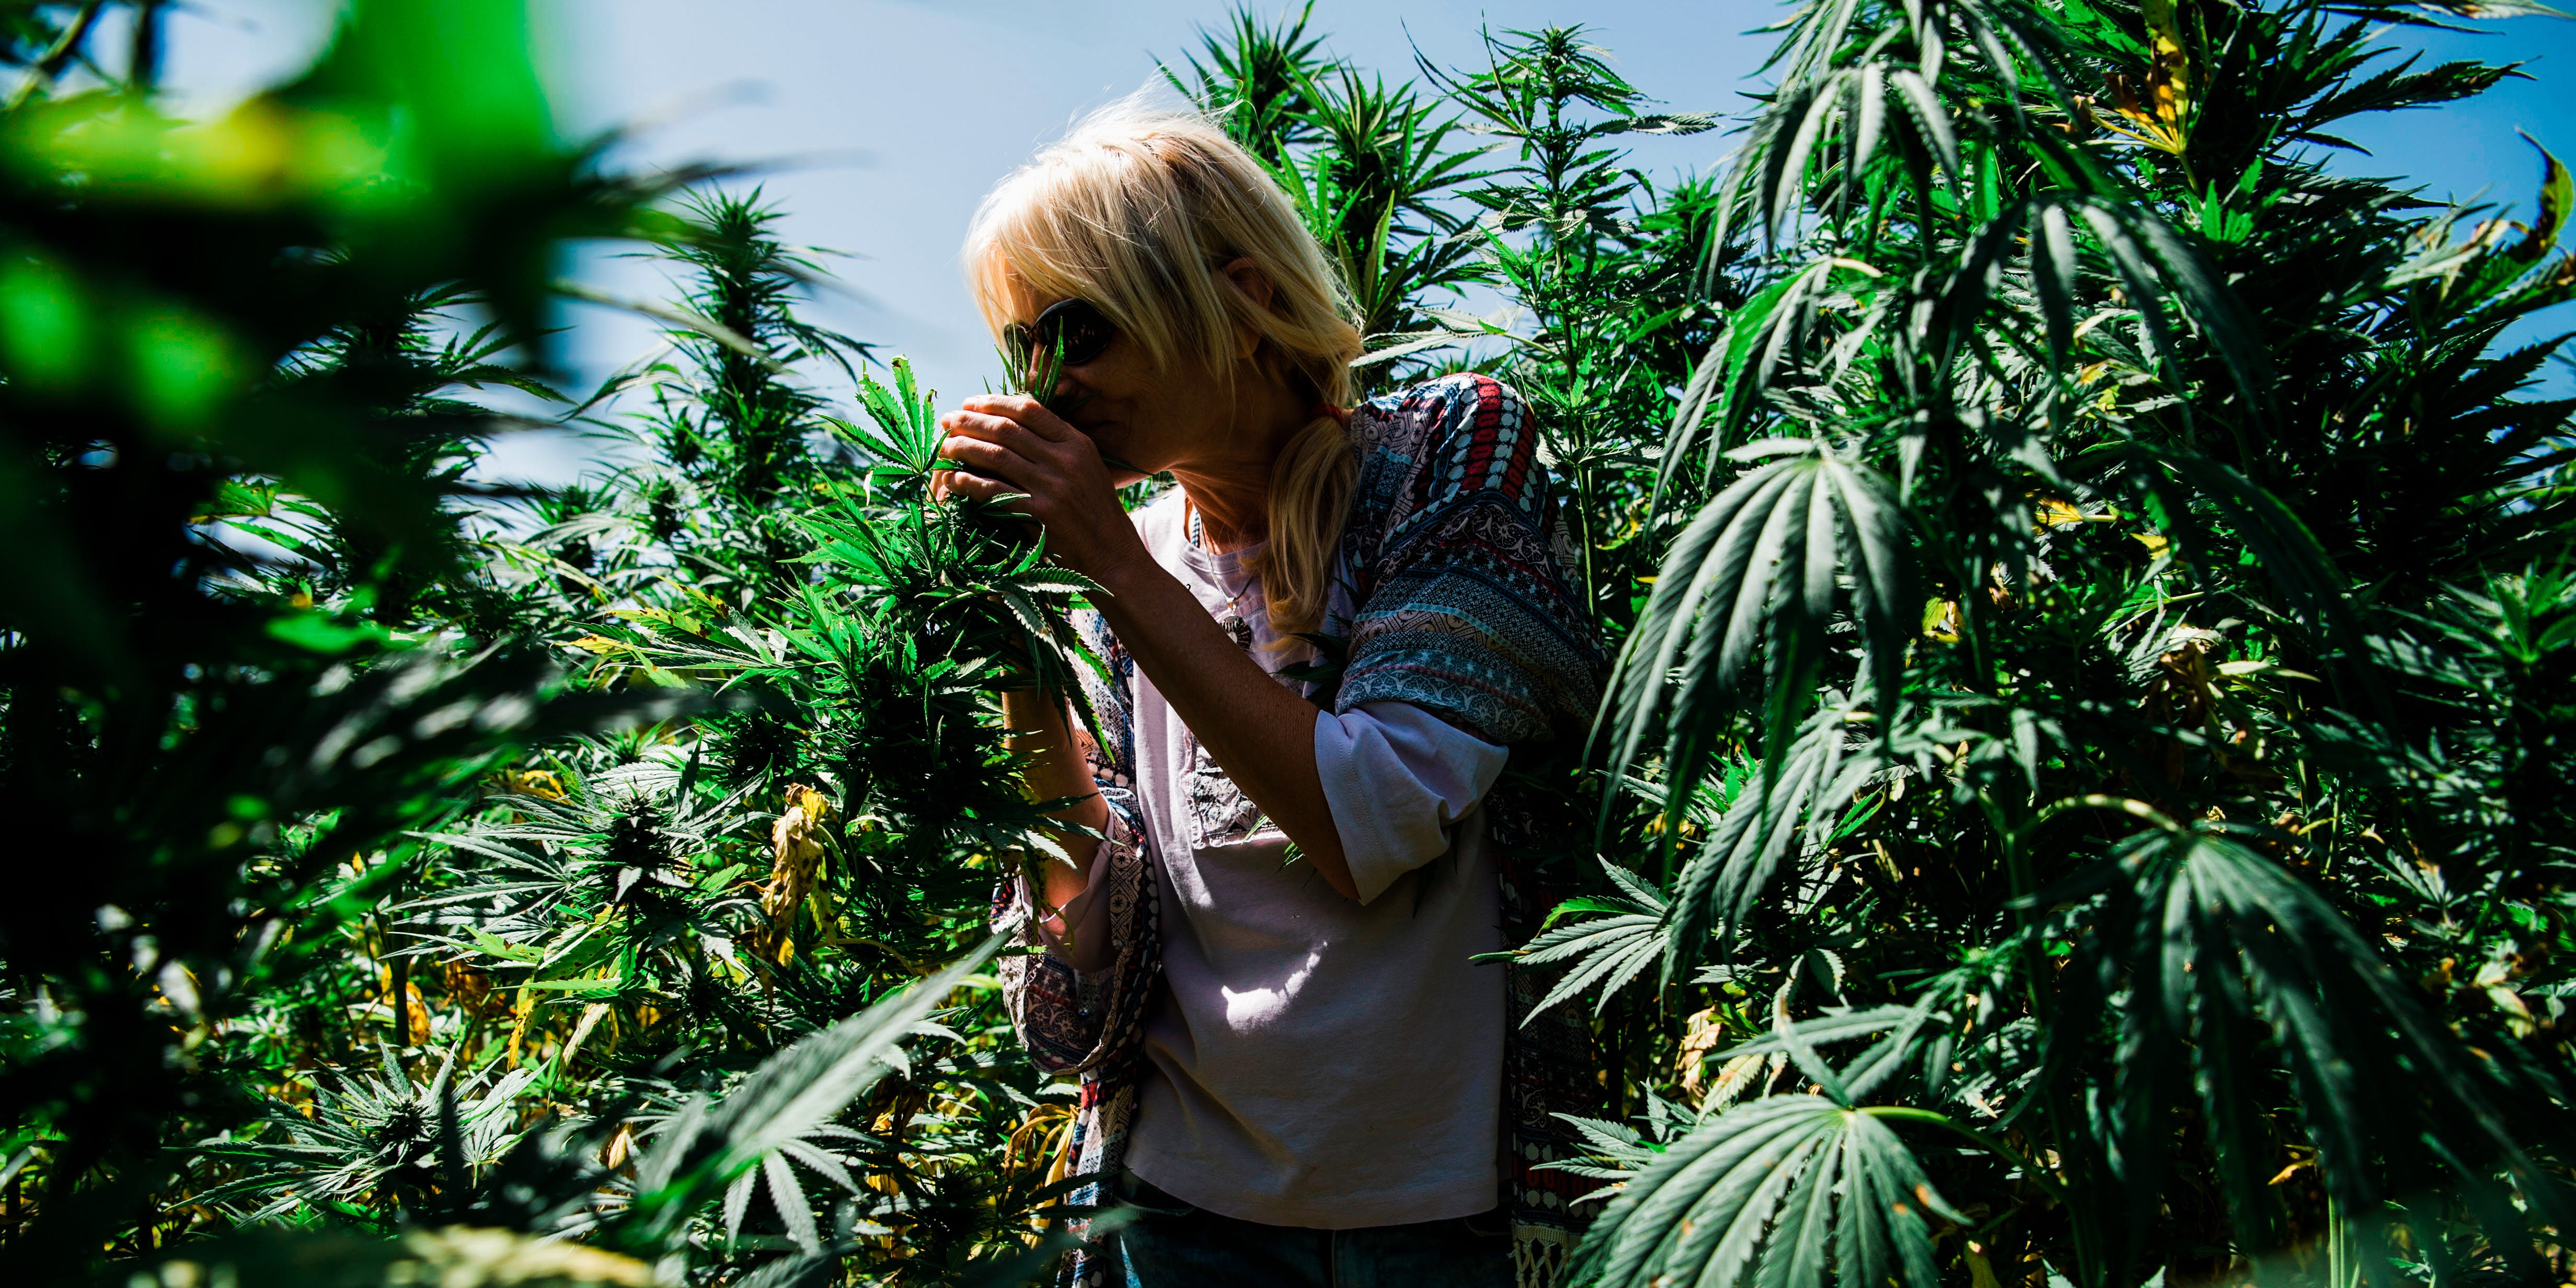 Humbolt County Cannabis Farmer tends to her grow operation